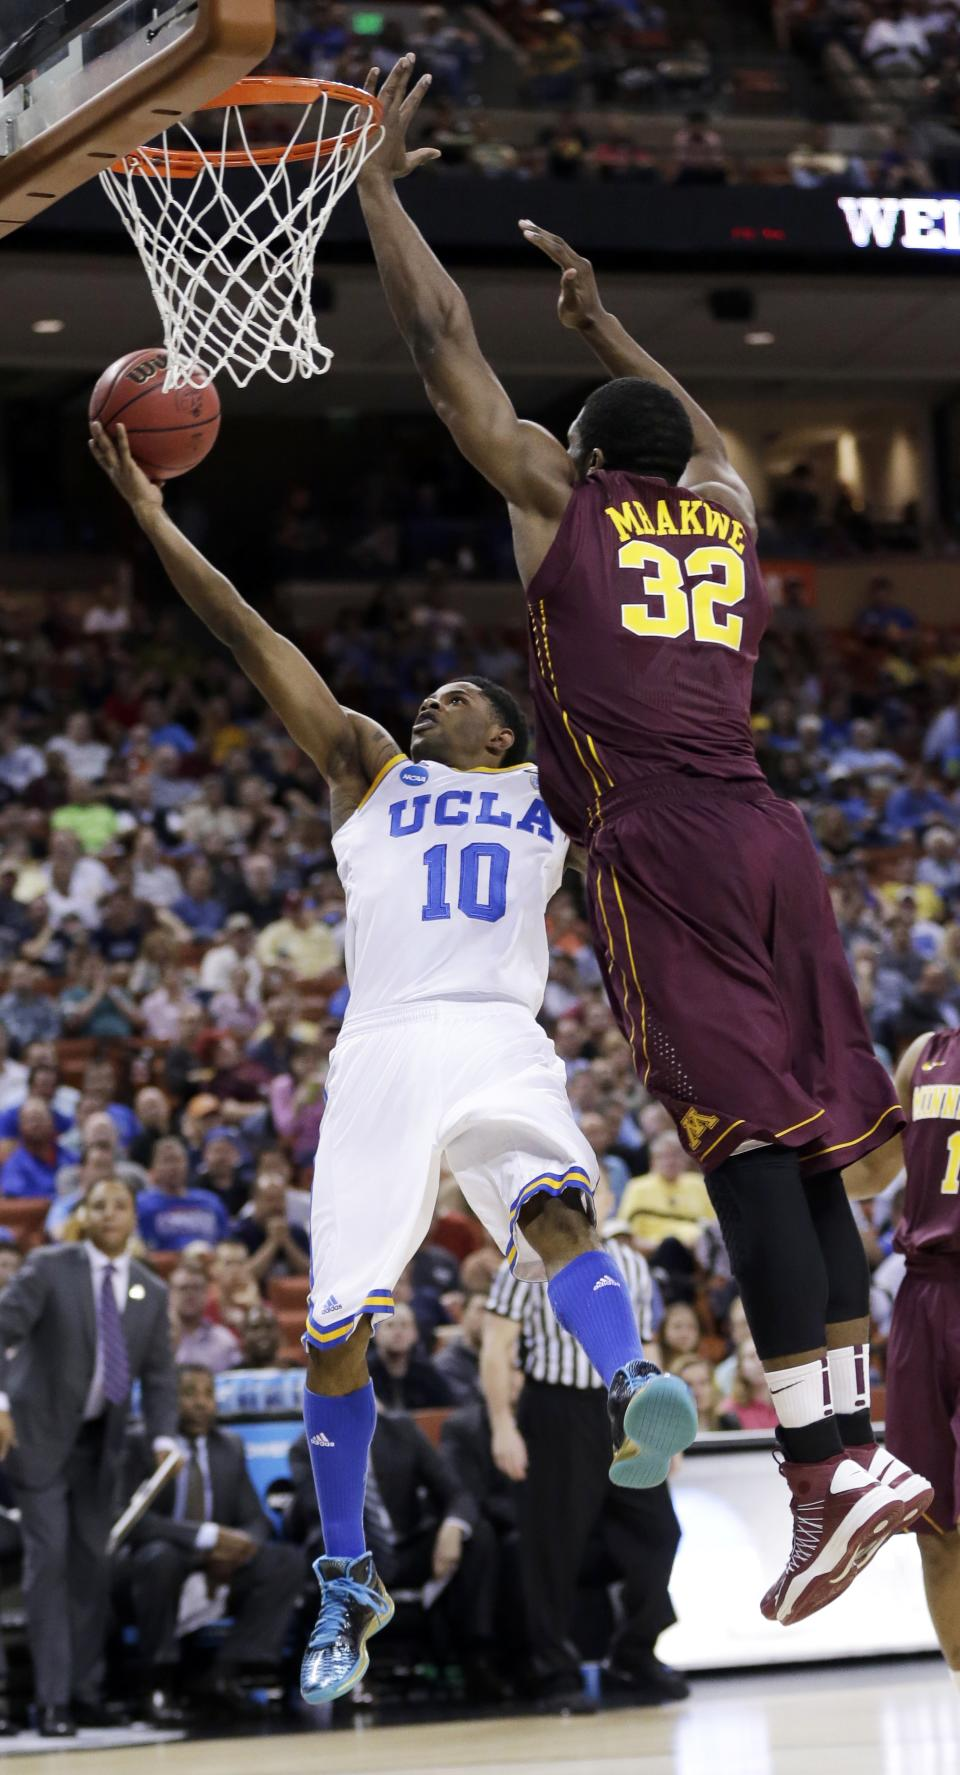 UCLA's Larry Drew II (10) shoots as Minnesota's Trevor Mbakwe (32) defends during the first half of a second-round game of the NCAA men's college basketball tournament Friday, March 22, 2013, in Austin, Texas.  (AP Photo/Eric Gay)